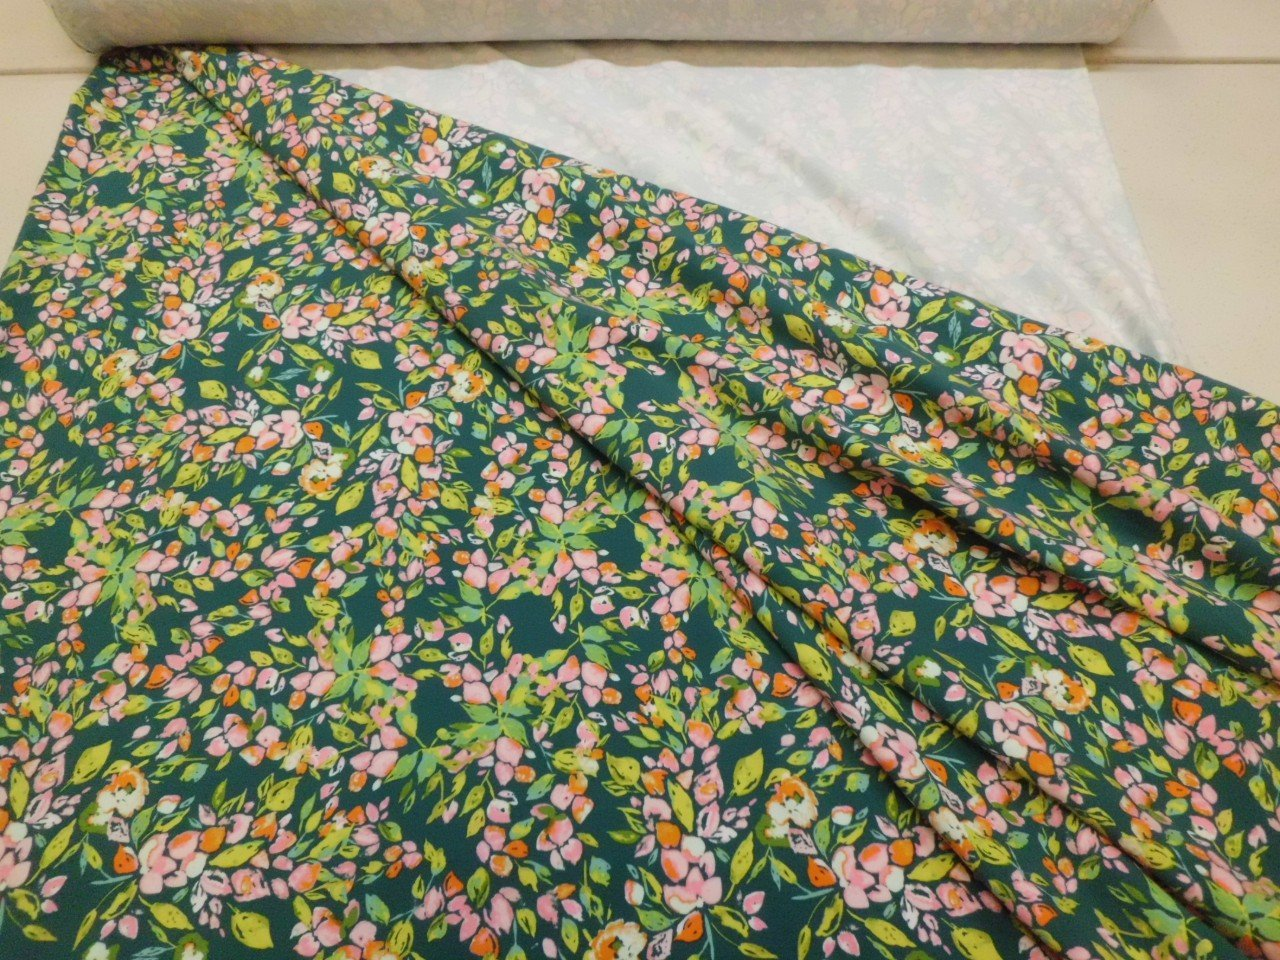 Art Gallery Cotton & Spandex Knit Floral Print in Evergreen Green